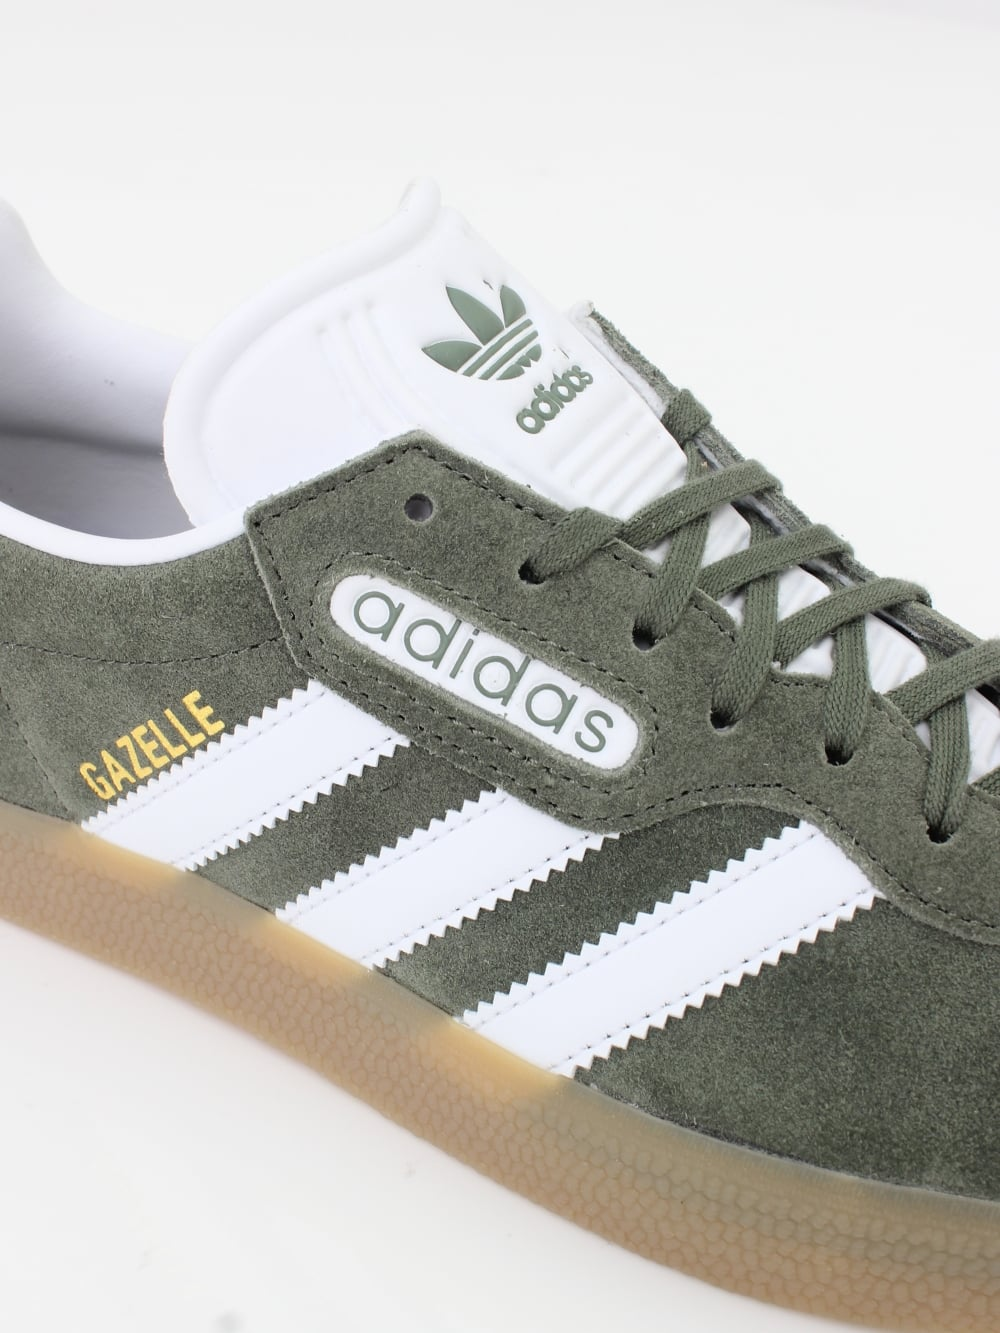 cd6145bc14a8 Home · Footwear · Trainers  Adidas Originals Gazelle Super - St  Major White. Tap image to zoom. Gazelle Super - St Major White